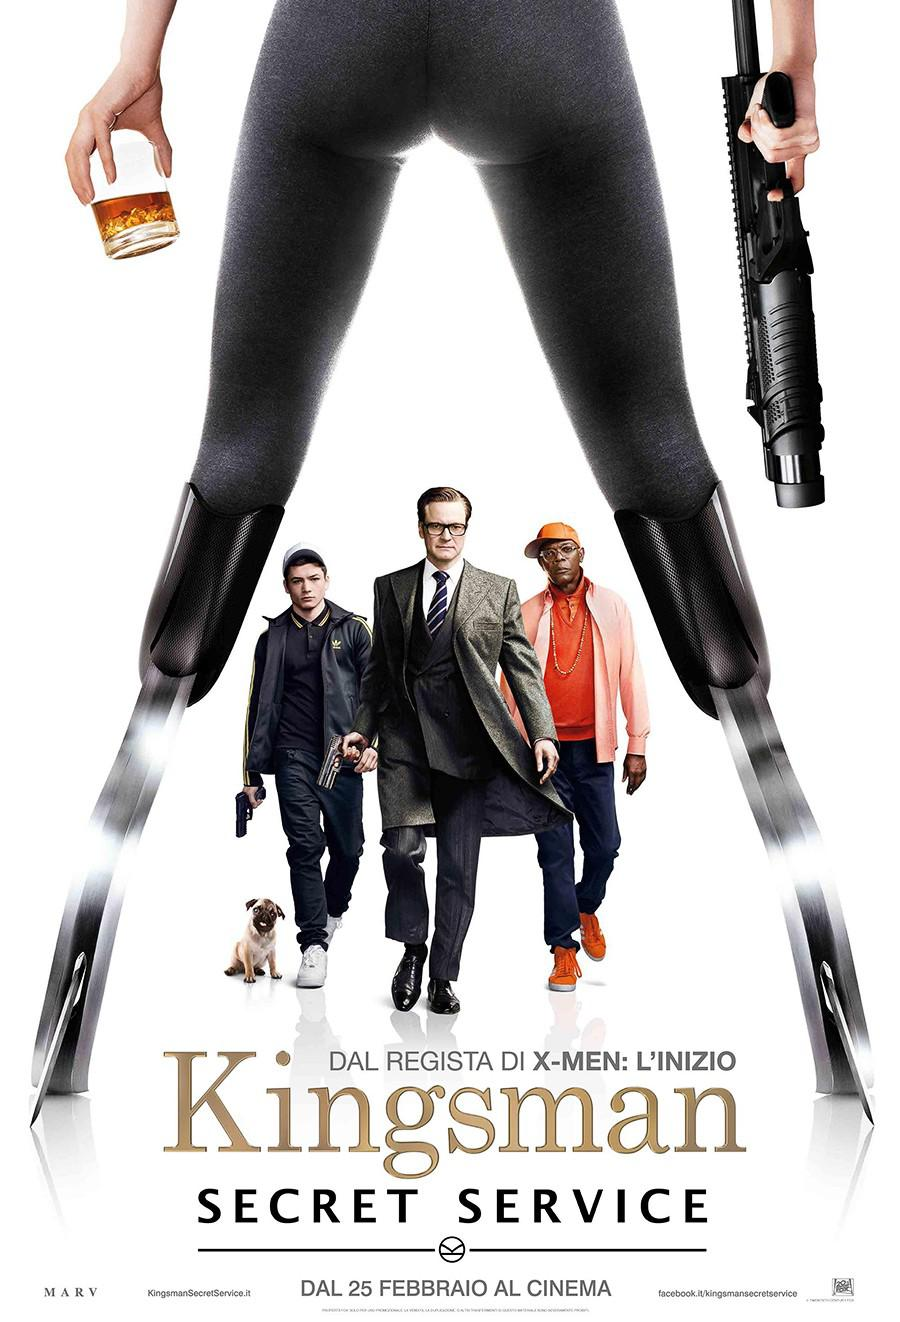 Kingsman 1 - the Secret Service